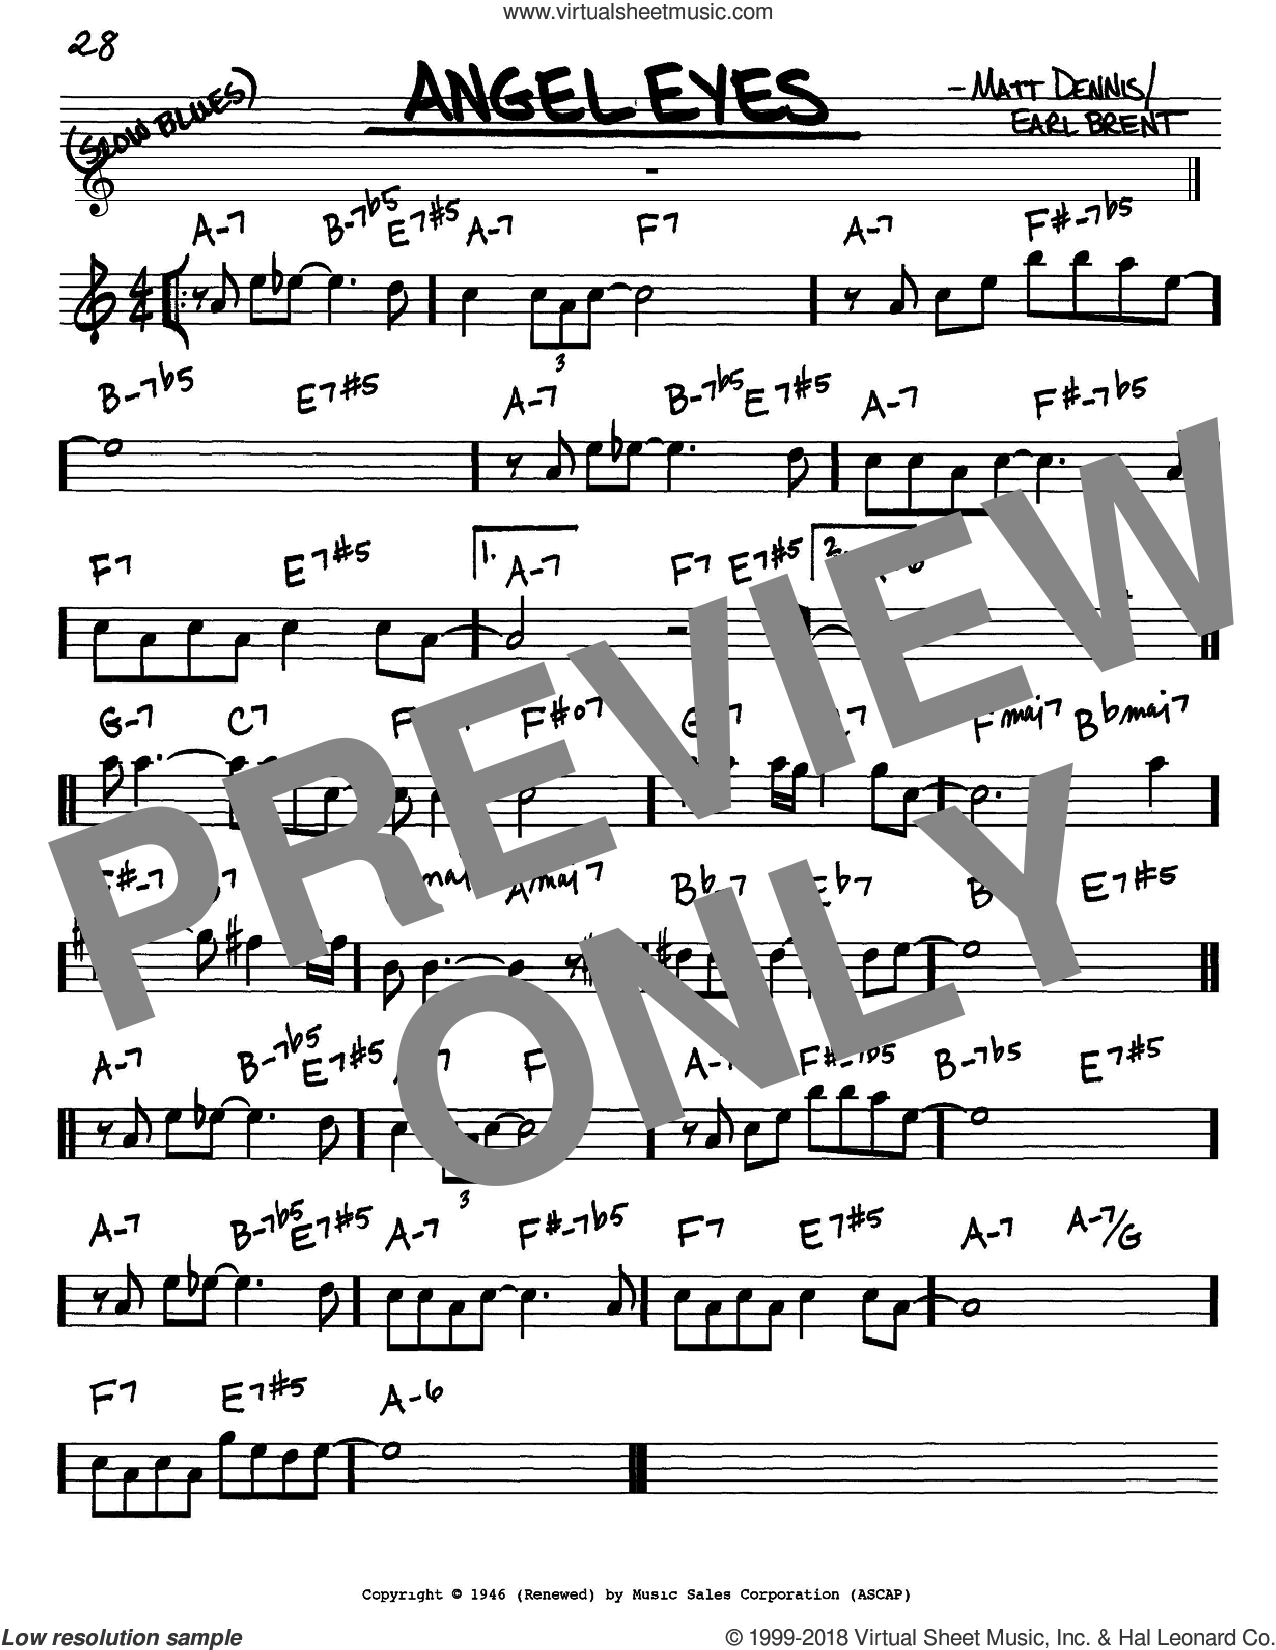 Angel Eyes sheet music for voice and other instruments (in Eb) by Frank Sinatra, Earl Brent and Matt Dennis, intermediate skill level